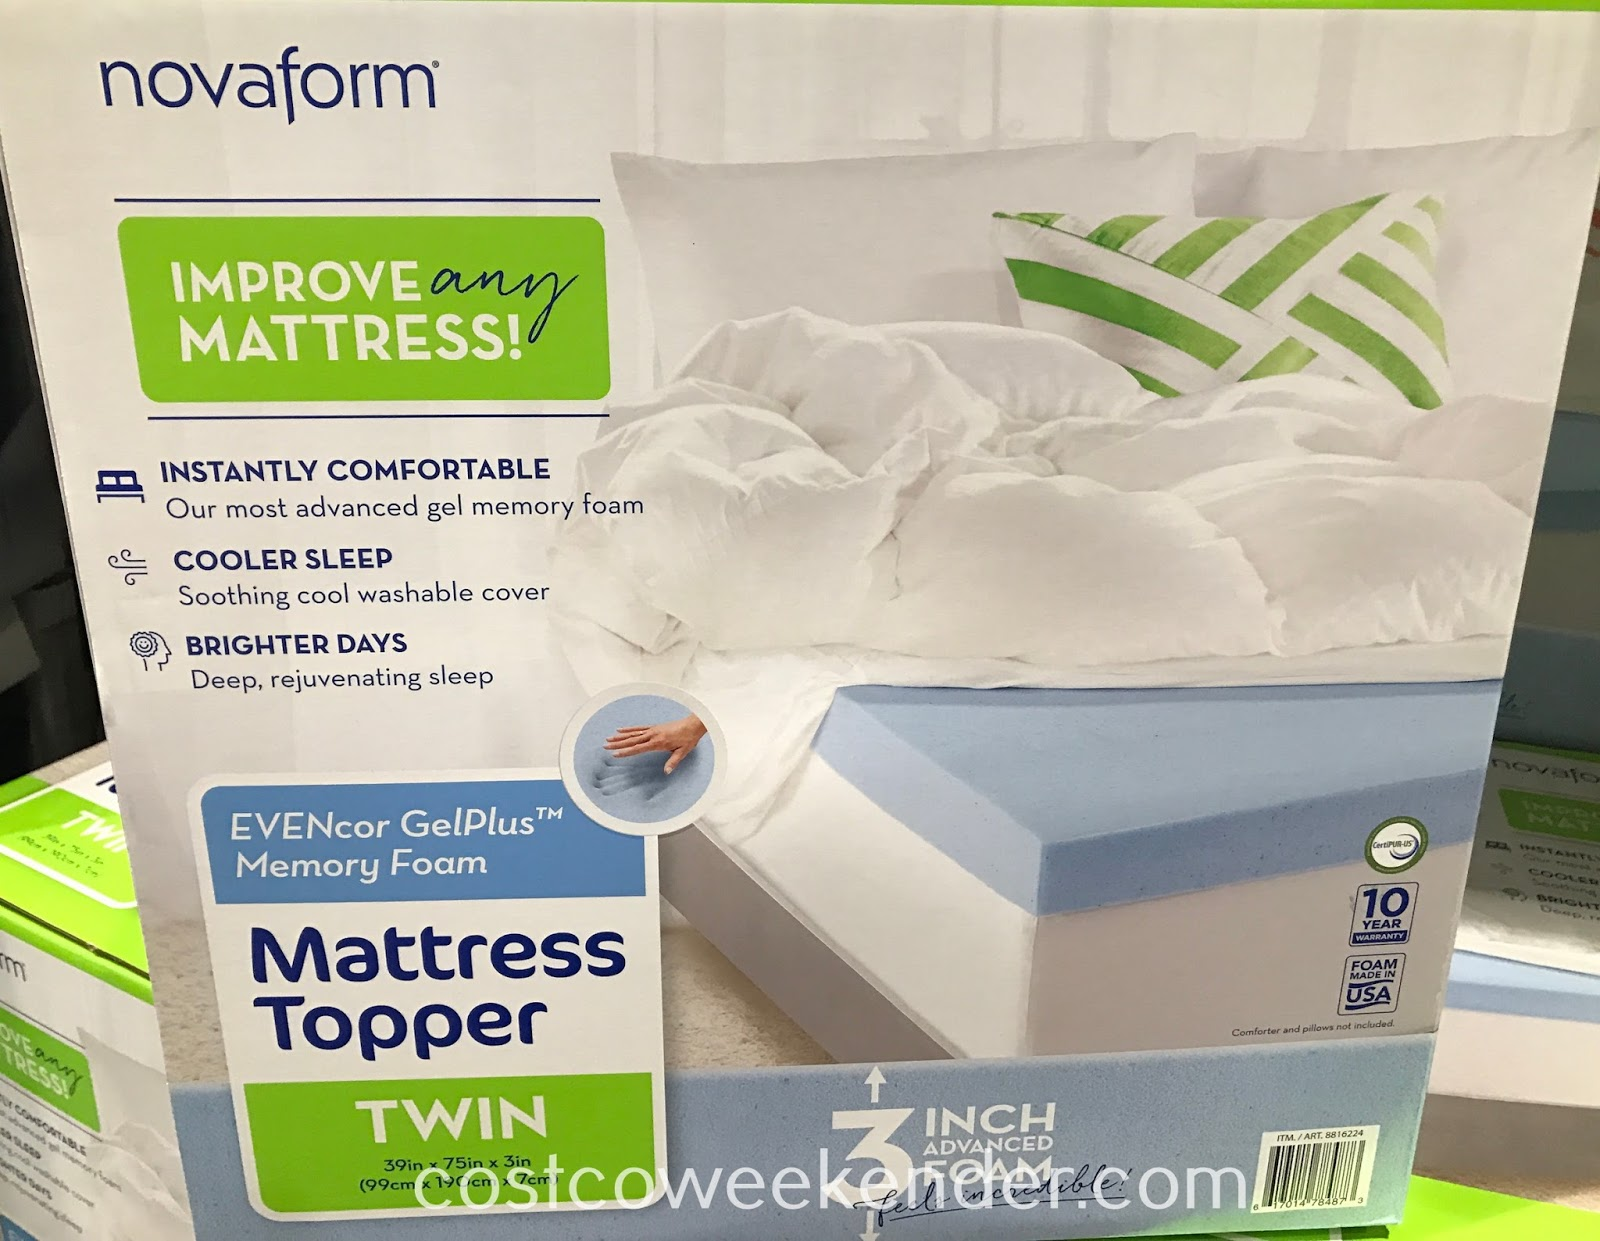 Sleep better in bed with the EVENcor Gel-Plus Memory Foam Mattress Topper (Twin)